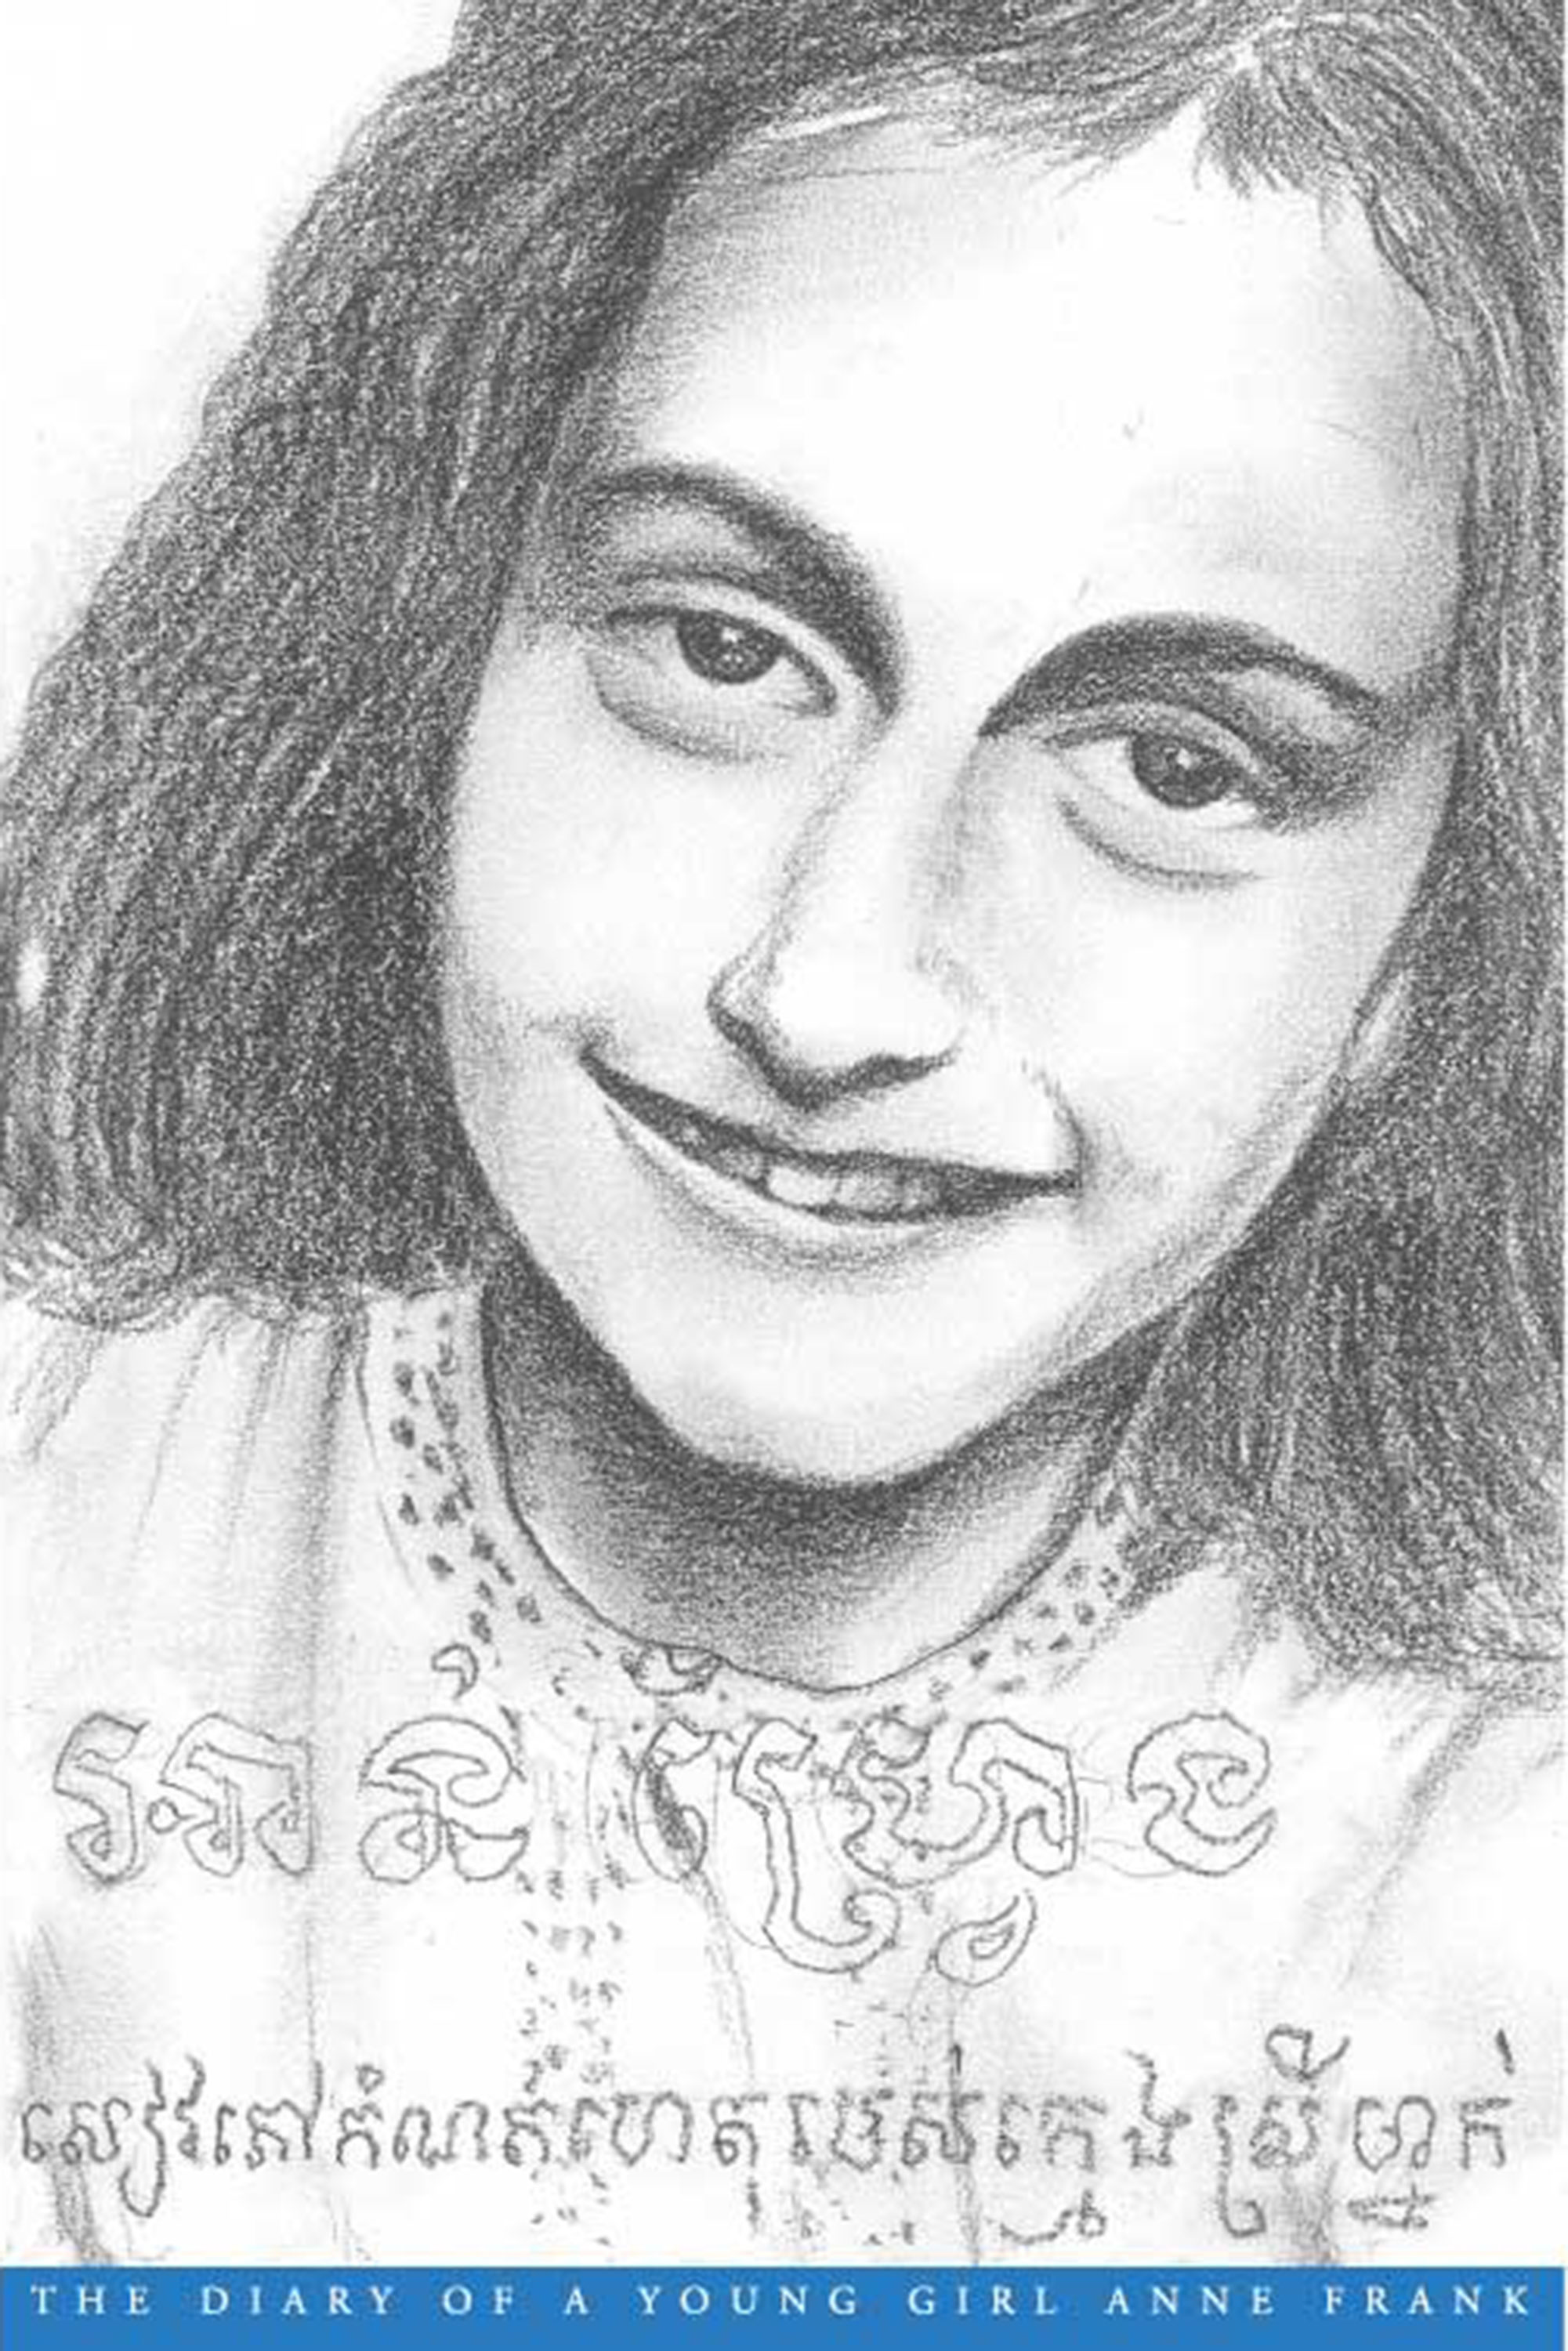 The Diary of a Young Girl Anne Frank Translated by Ser Sayana 2002